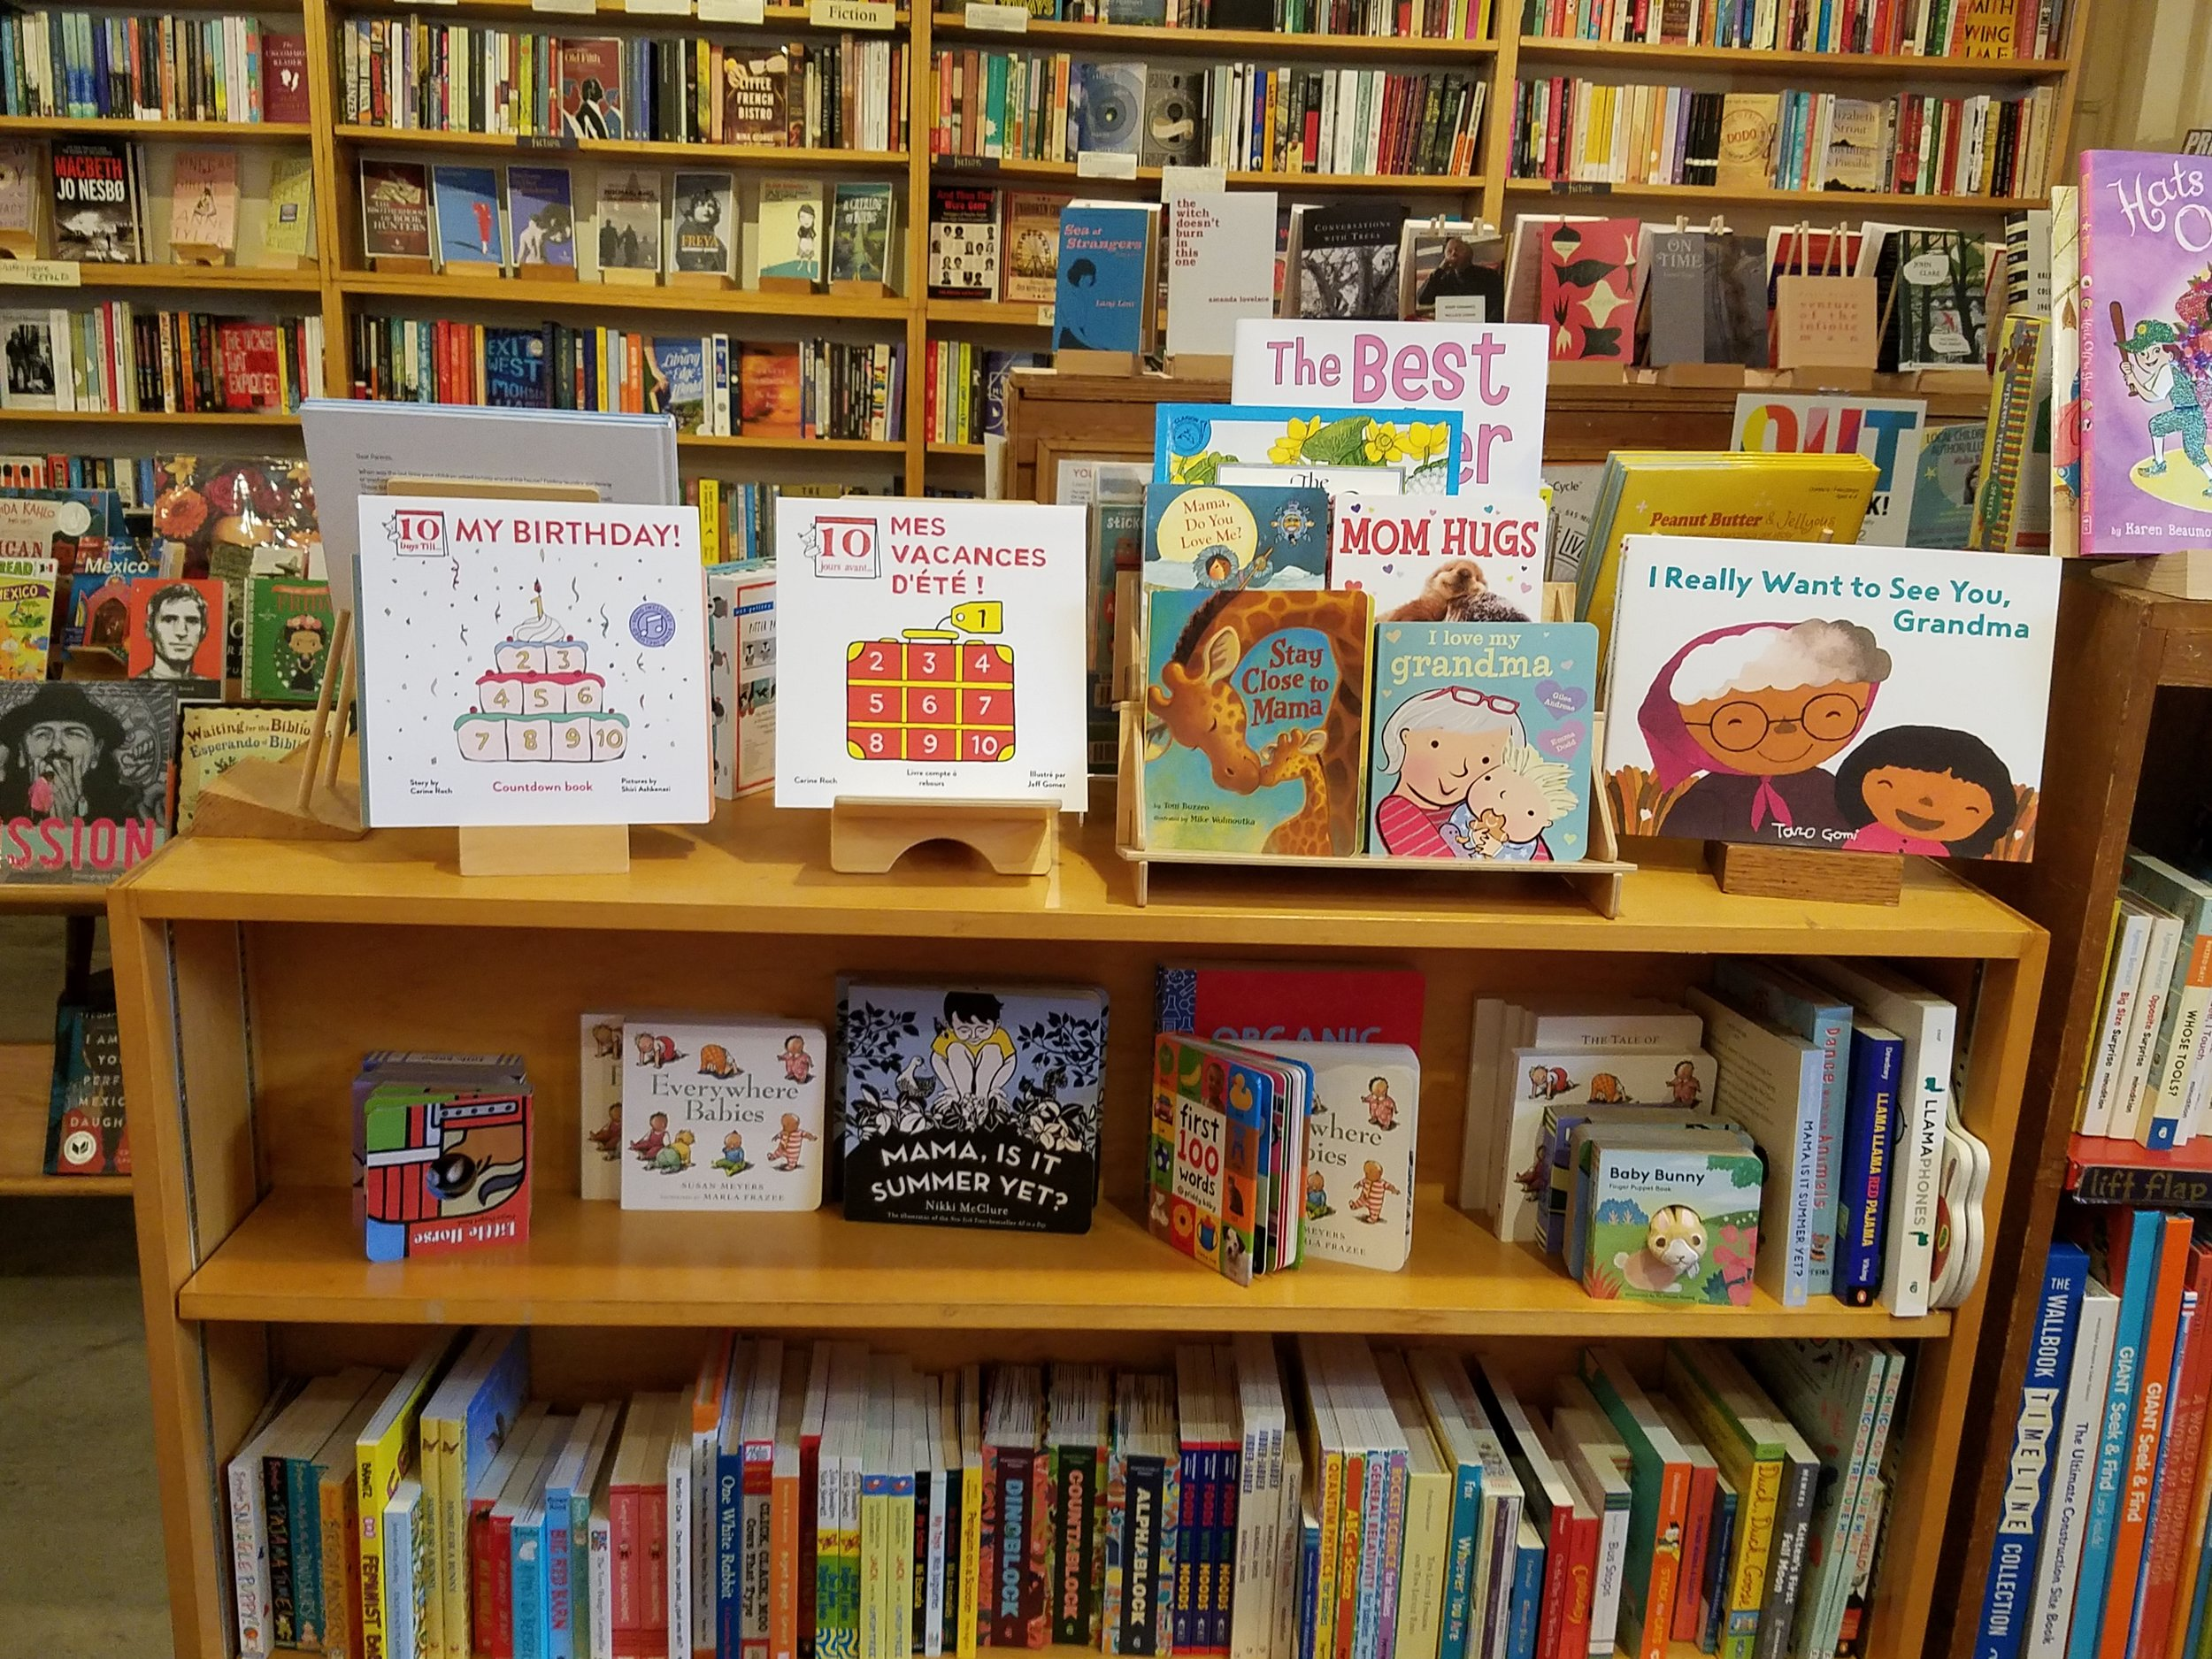 Go shopping in San Francisco - and support independent stores & bookstores , authors & illustrators!Charlie's Corner, Folio Books, Bird & Beckett, Just For Fun, Dog Eard Books, Adobe Books, Mapamundi Kids, Other Avenues, Abrams Claghorn Gallery, and more!